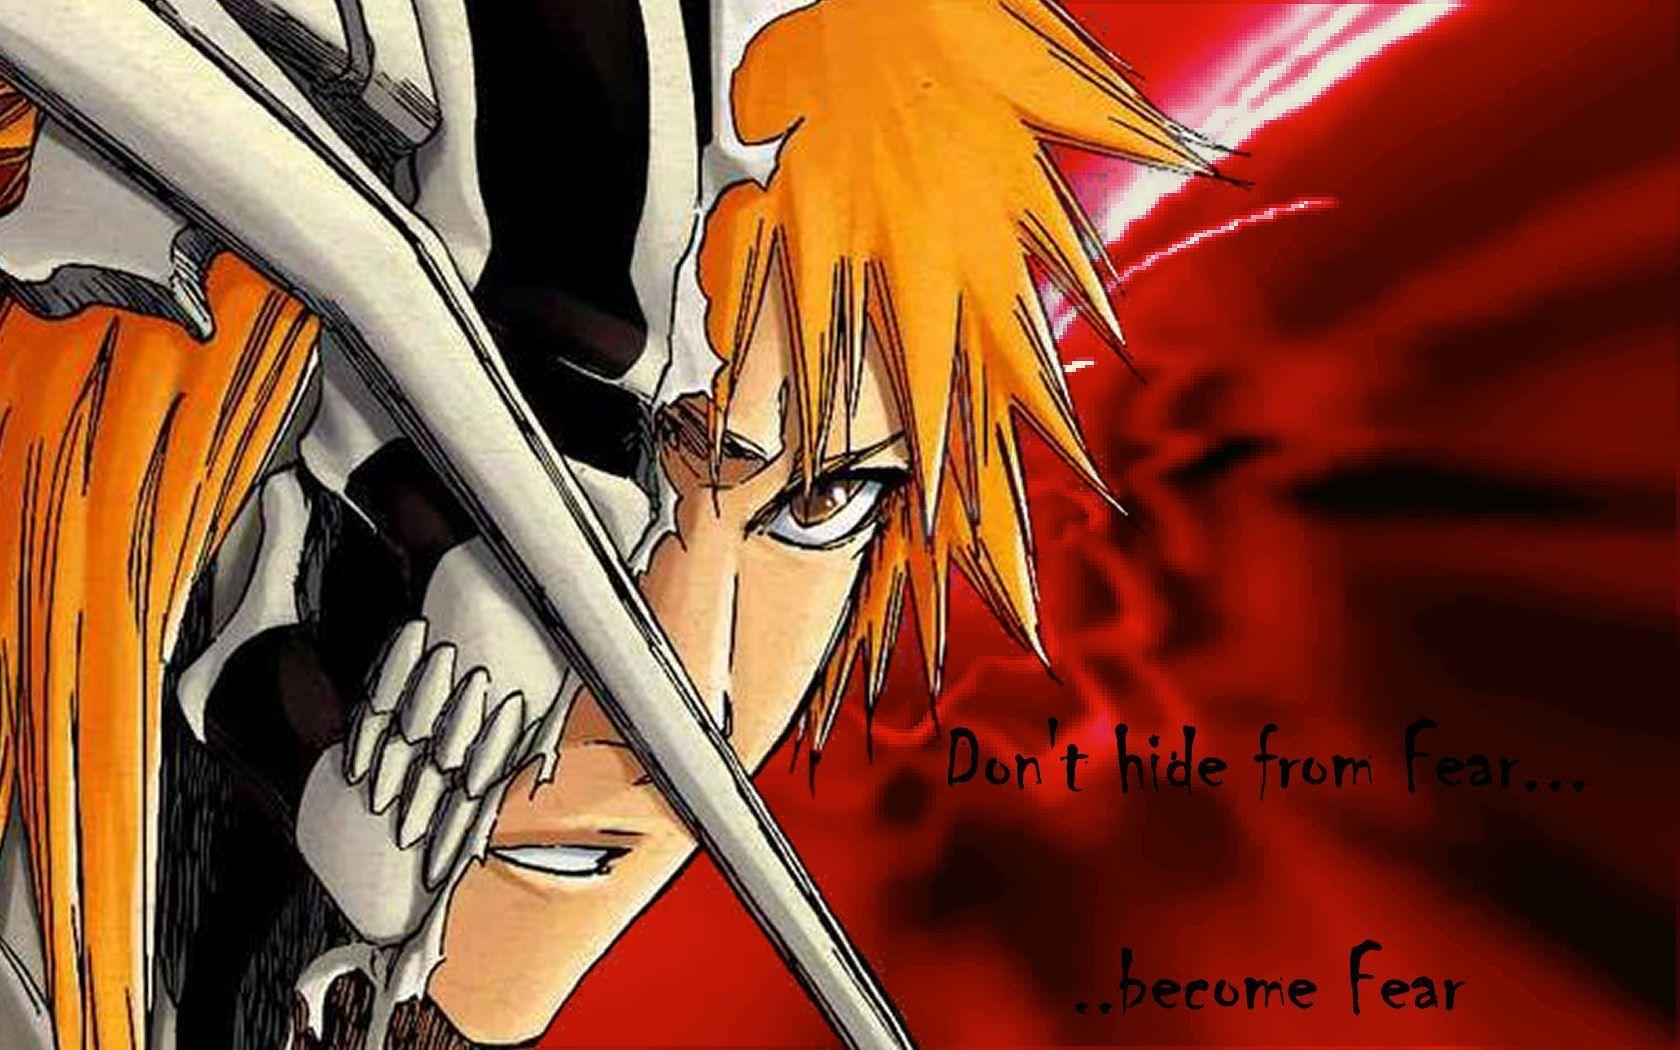 http://wallpapercave.com/wp/c8C32oE.jpg Ichigo Hollow Wallpaper